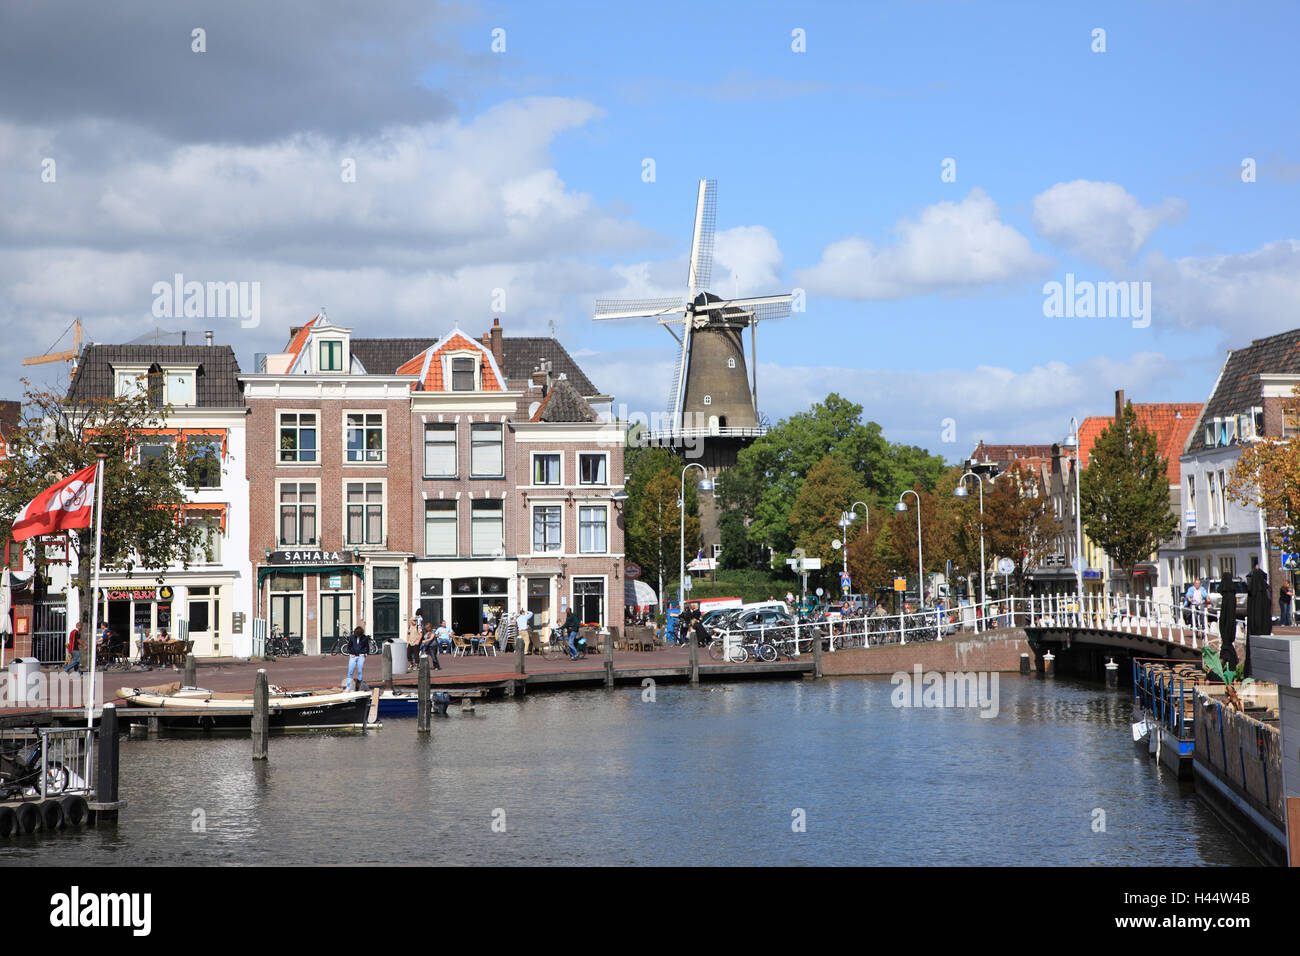 The Netherlands, ailments, town view, harbour, - Stock Image